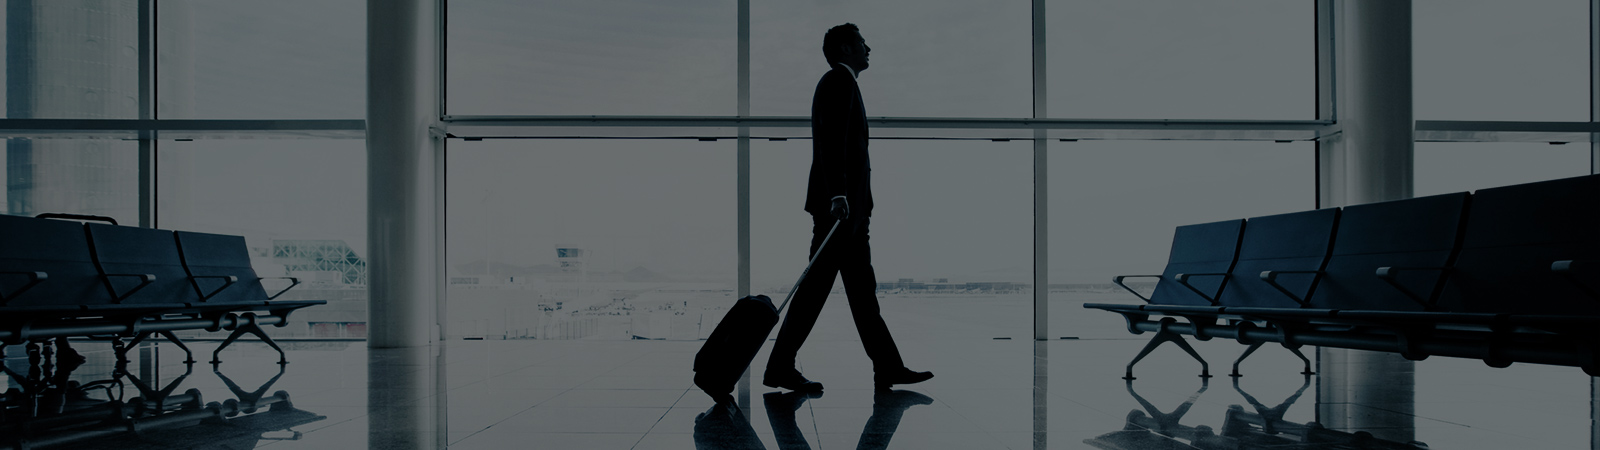 A man walking in an airport with his suitcase